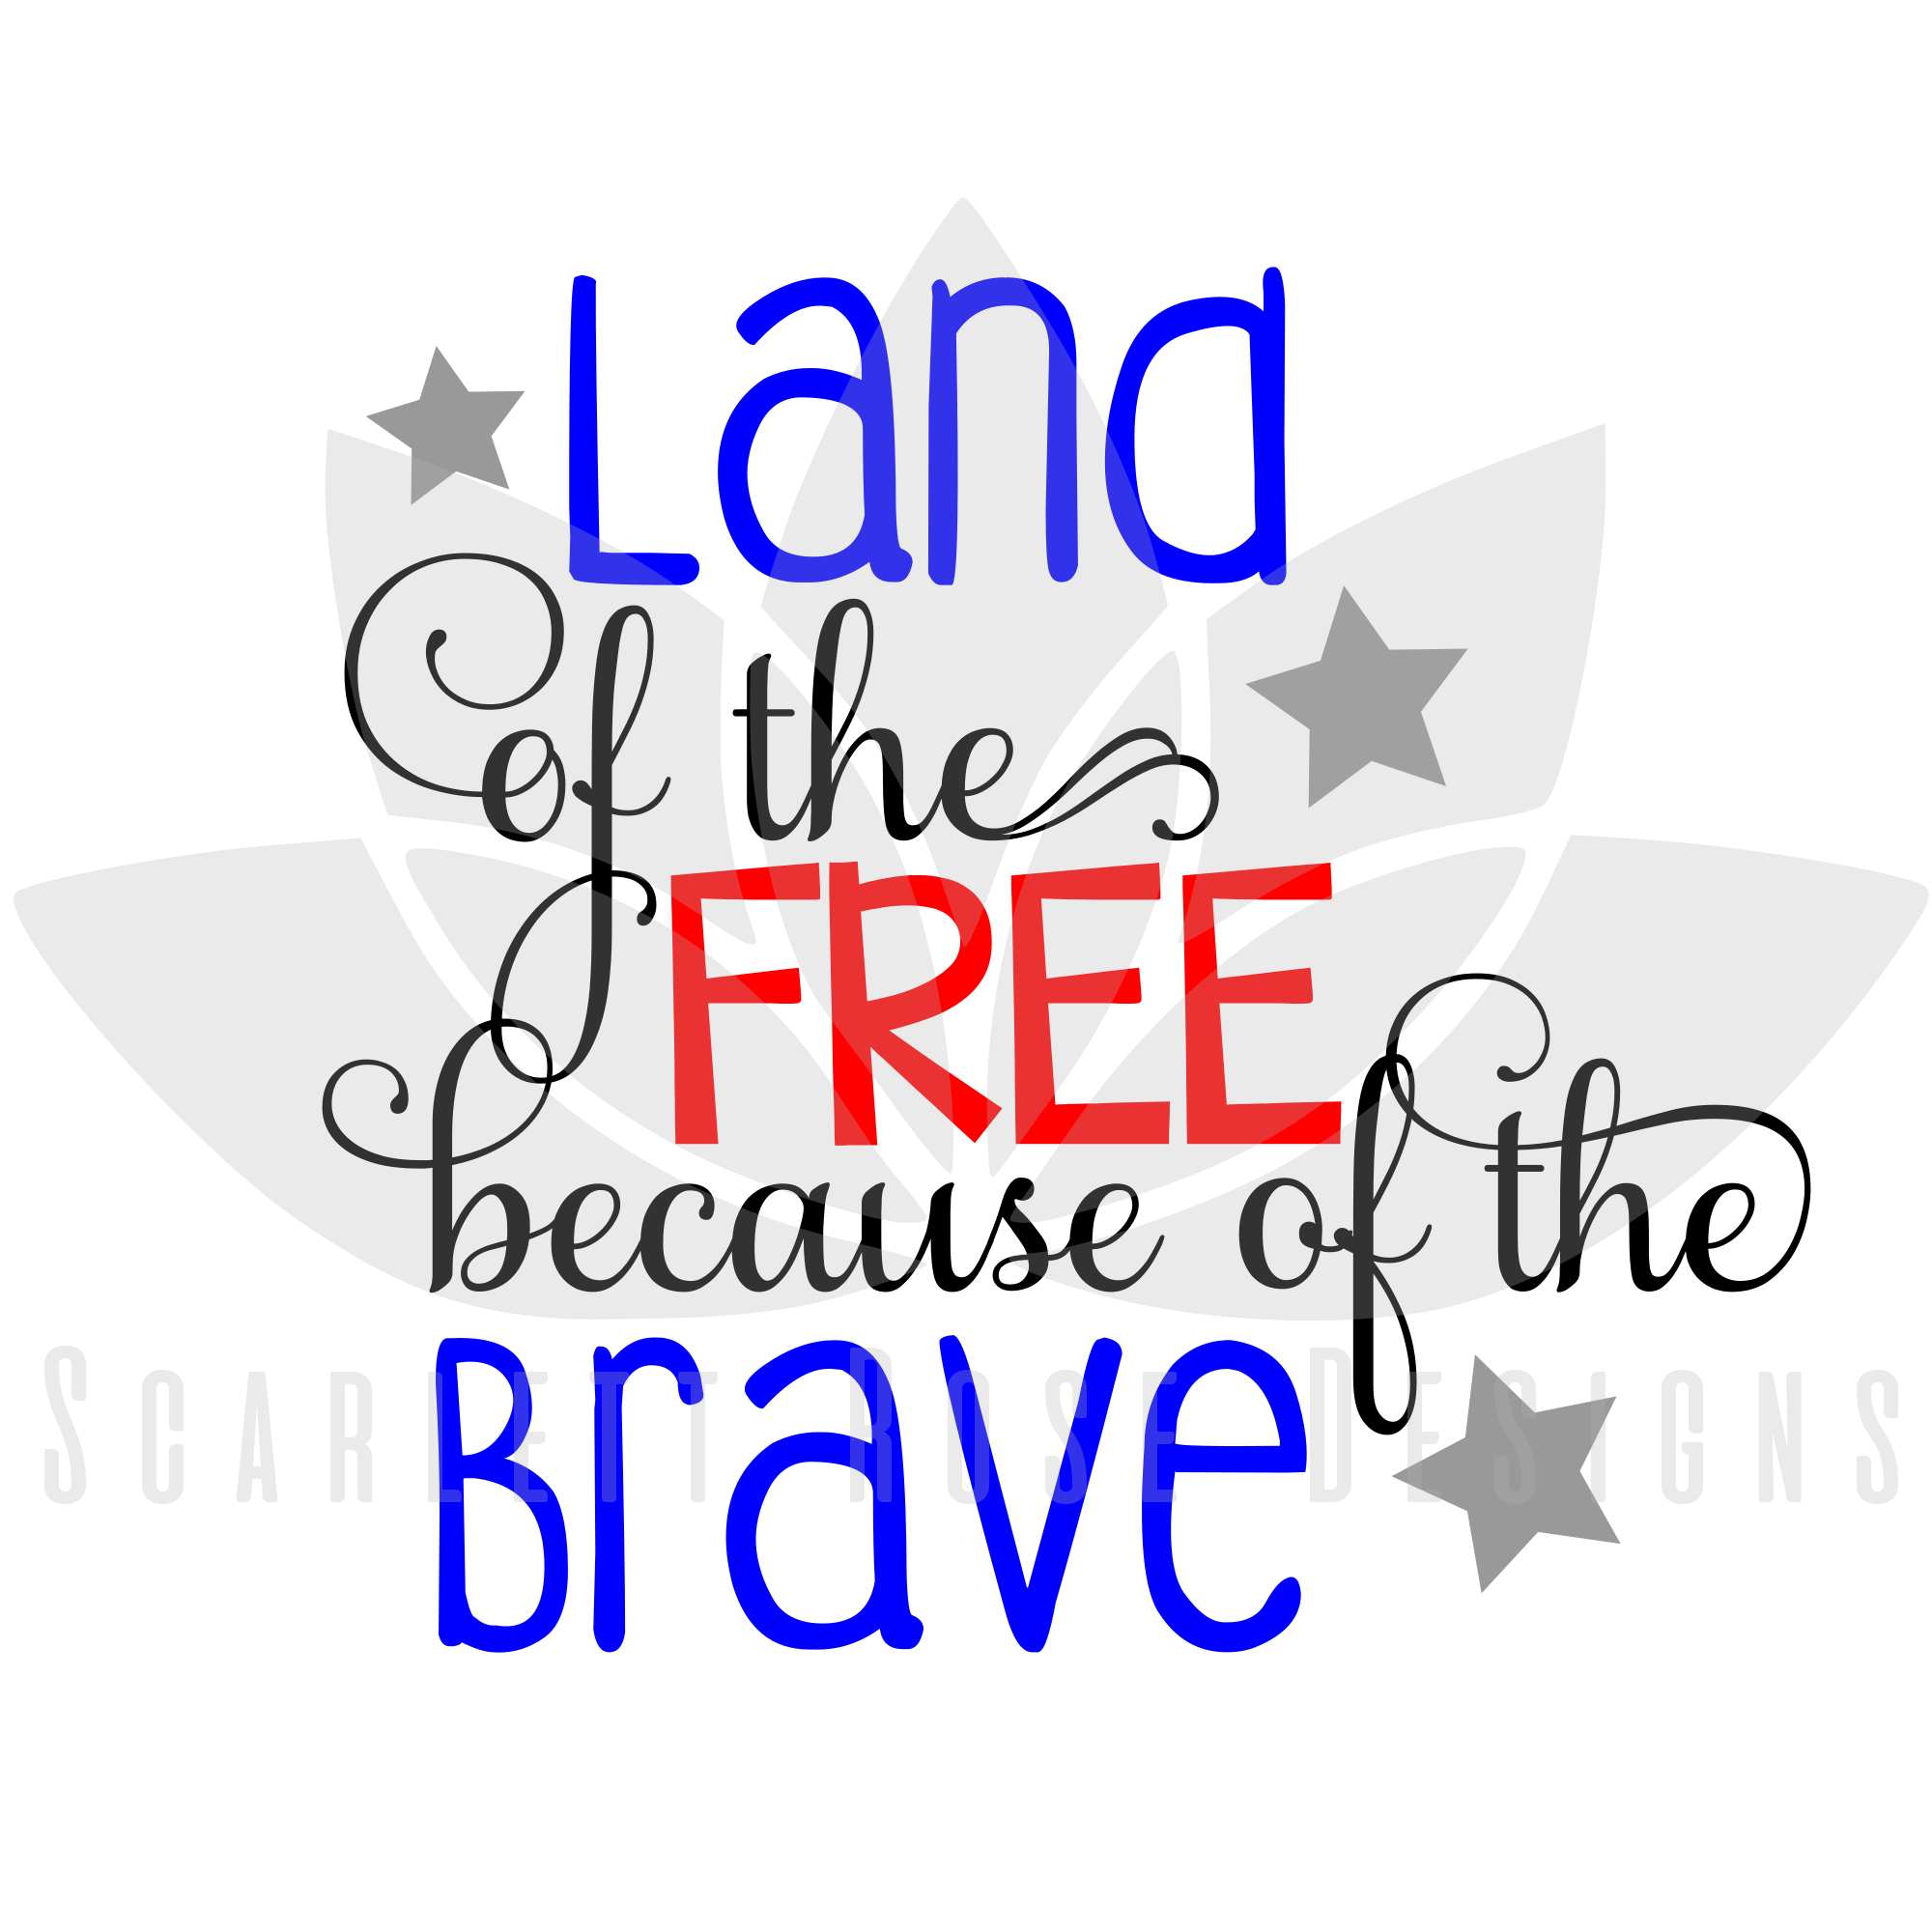 Fourth Of July Svg Cut File Land Of The Free Because Of The Brave Svg Cut File Scarlett Rose Designs